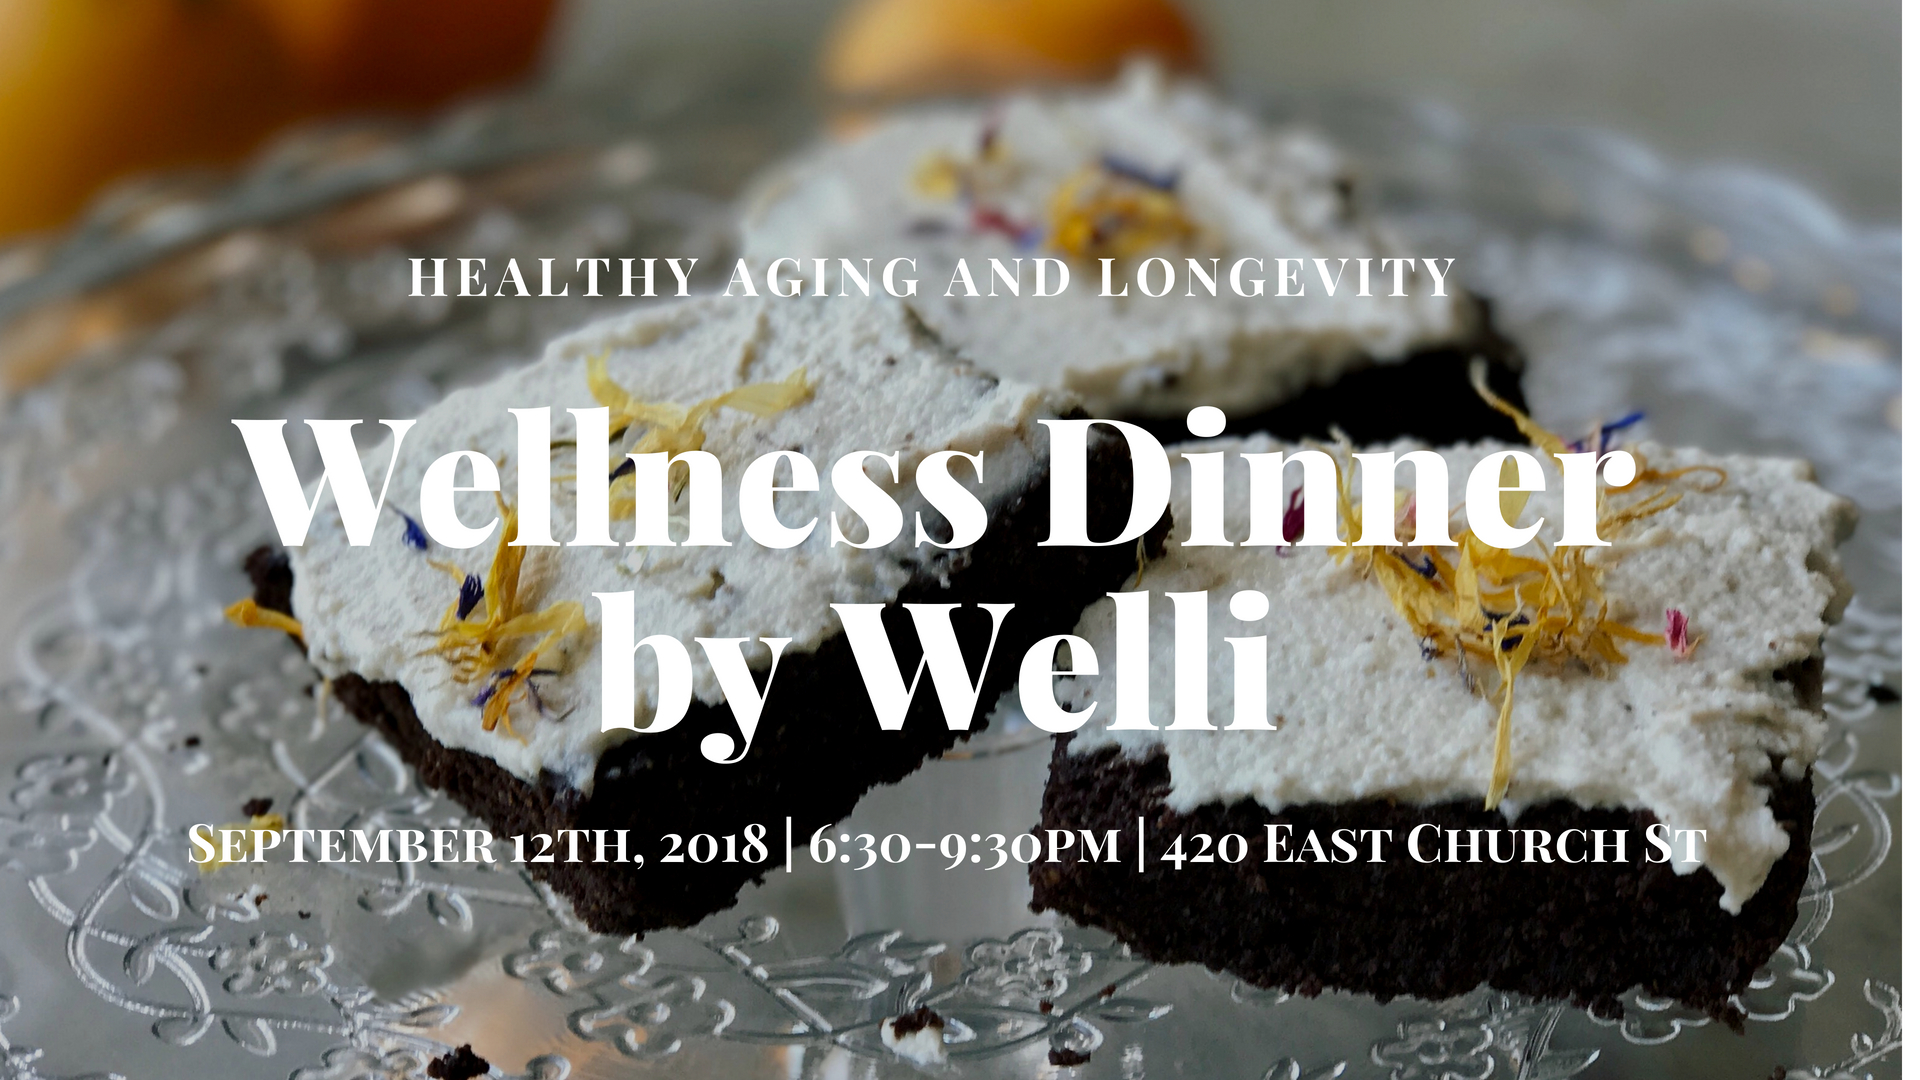 Wellness Dinner with Welli - www.getWelli.com - #Orlando #vegan #health #wellness #event